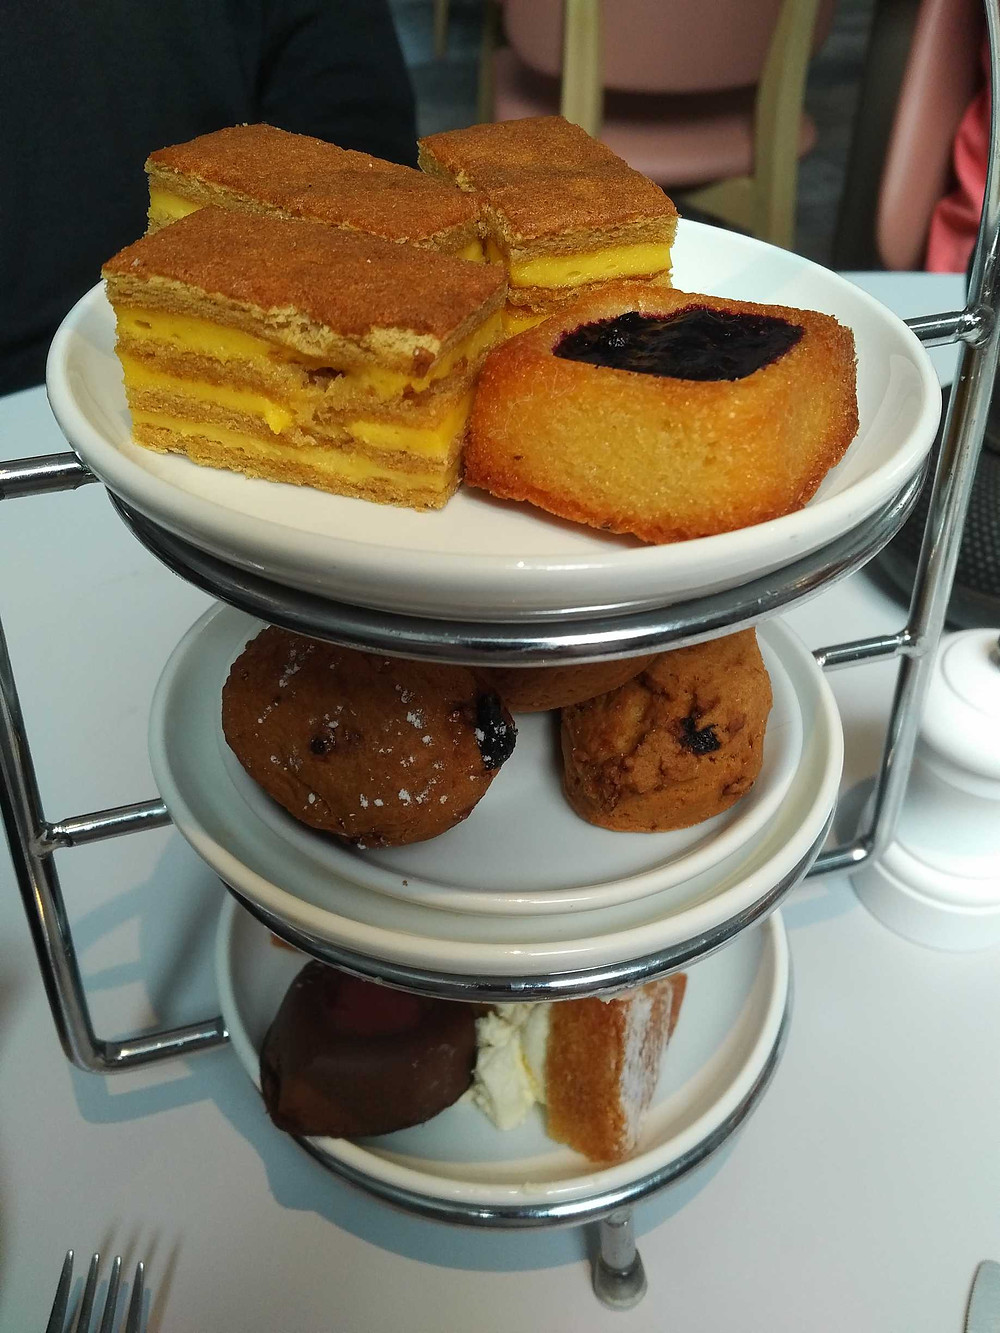 The National Gallery Afternoon Tea - A Foodie Guide to London